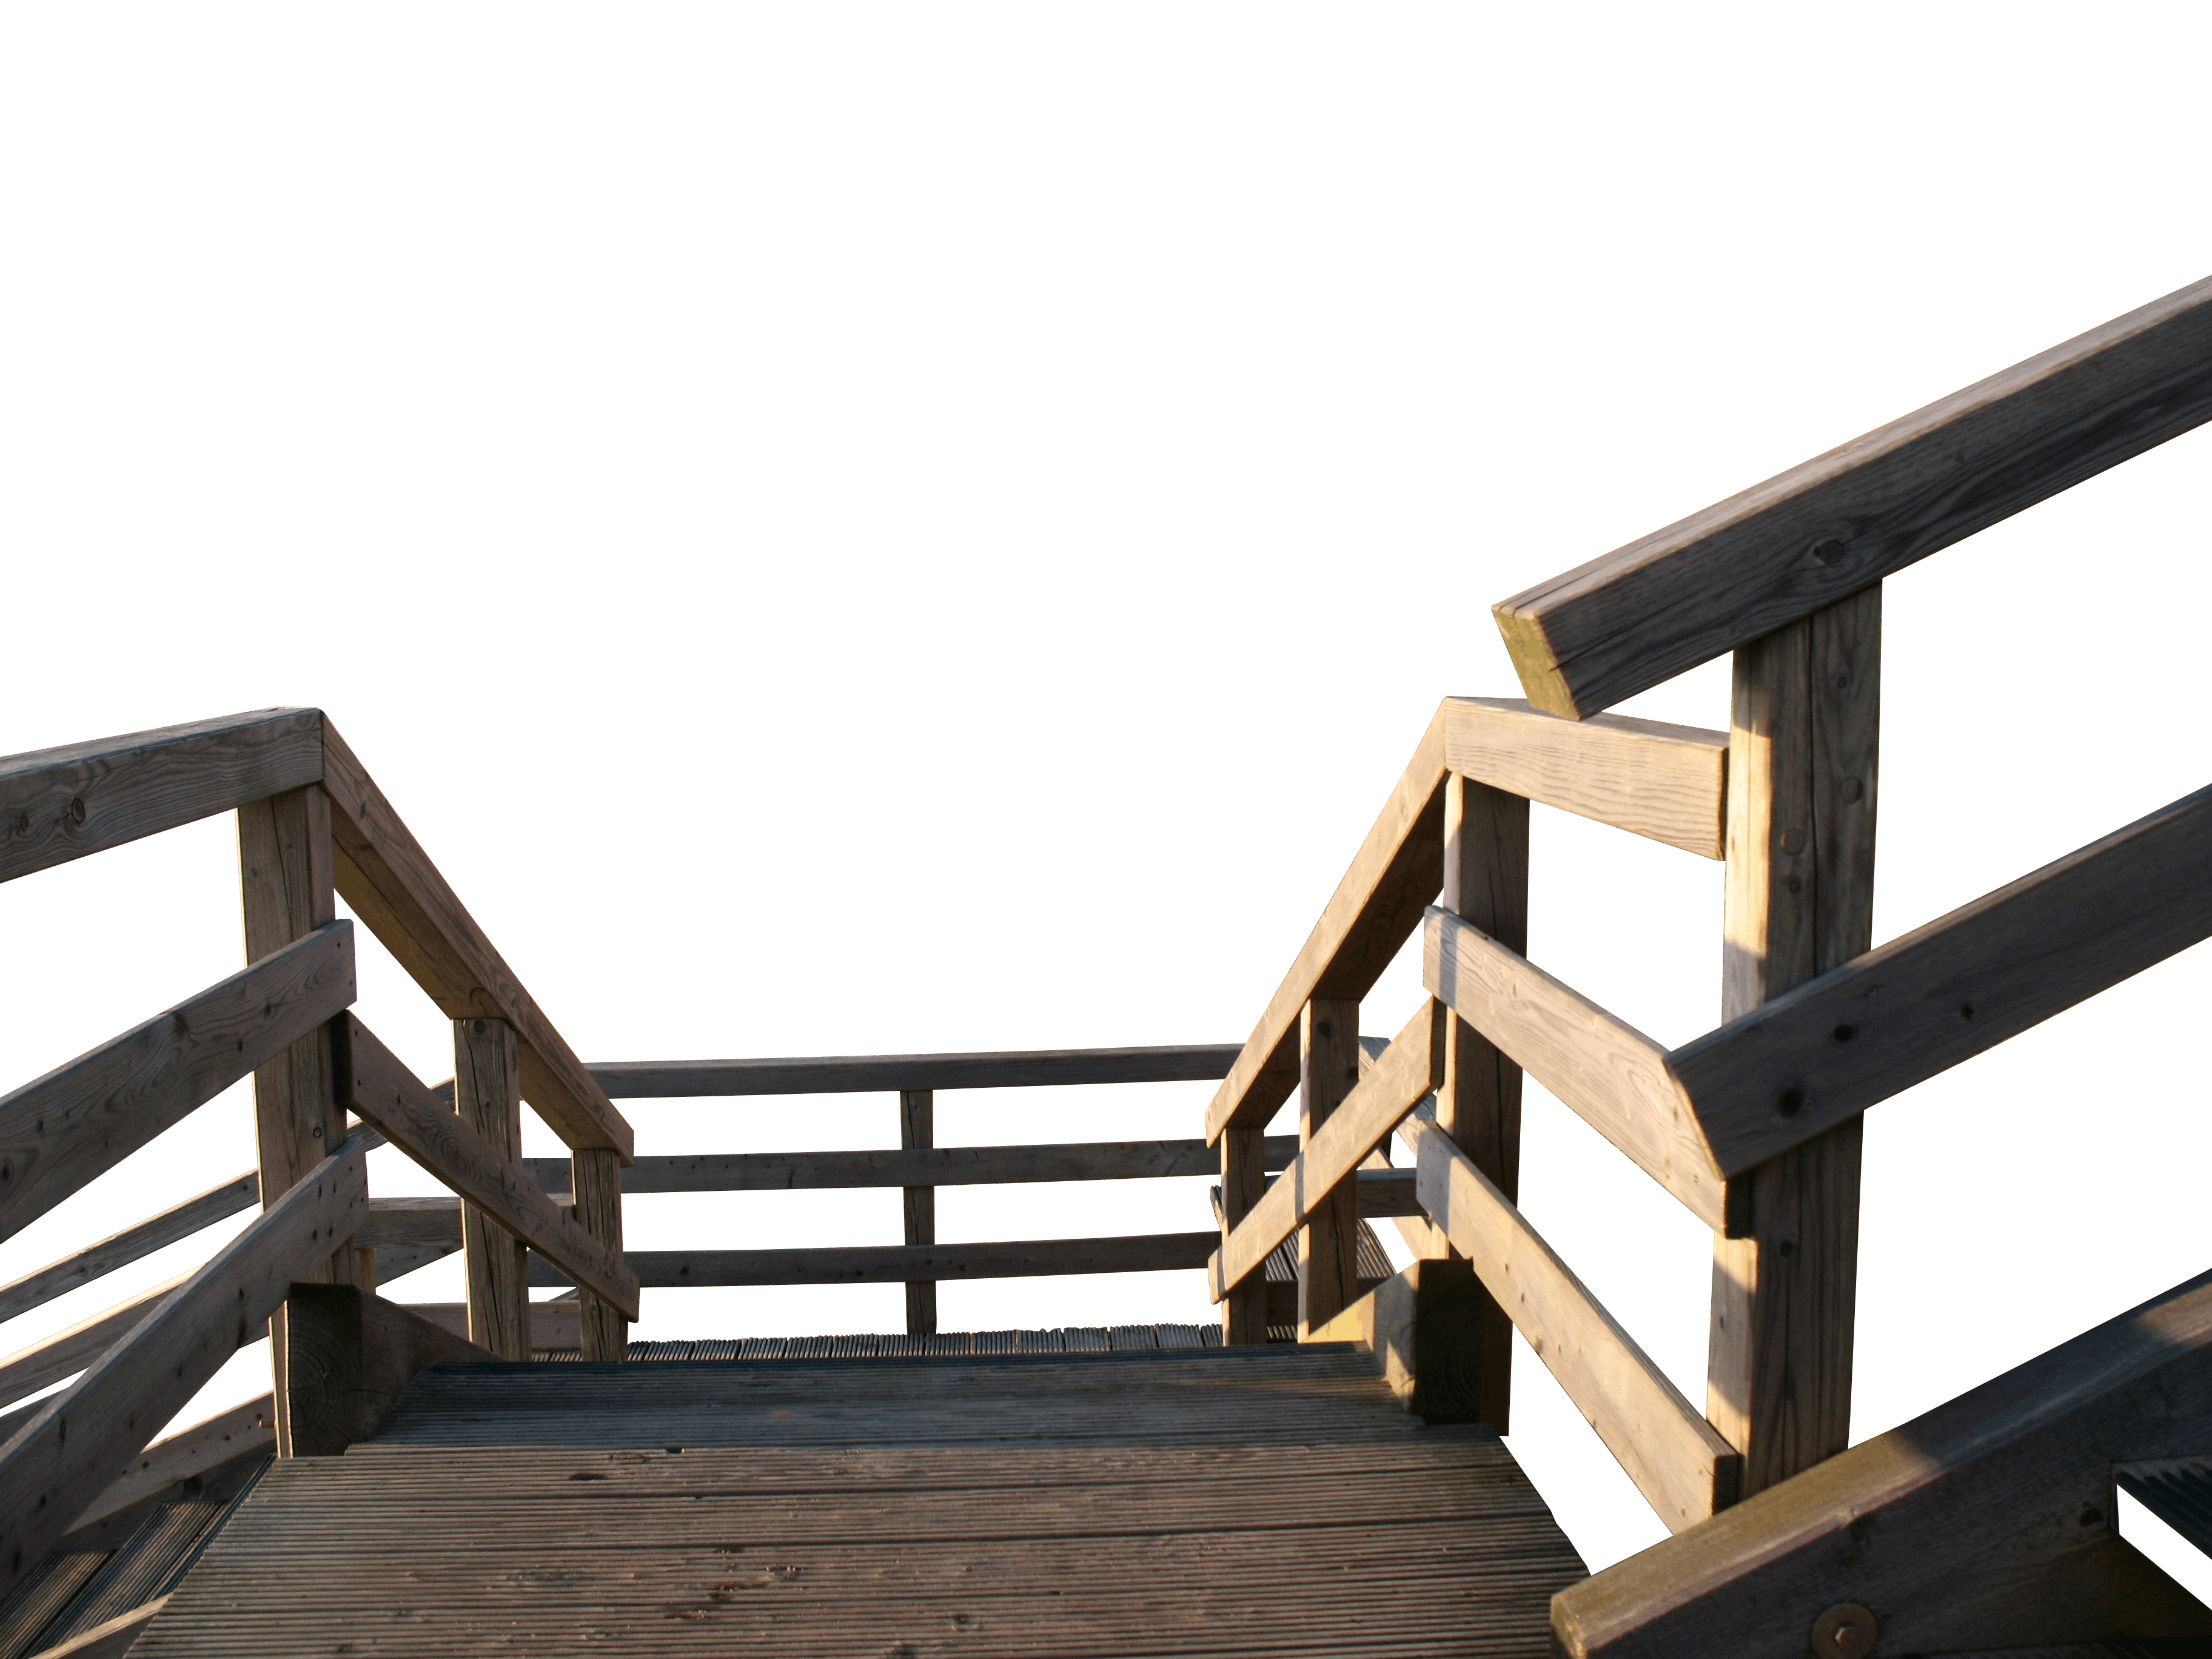 Free stock photo of wood, stairs, nature, construction